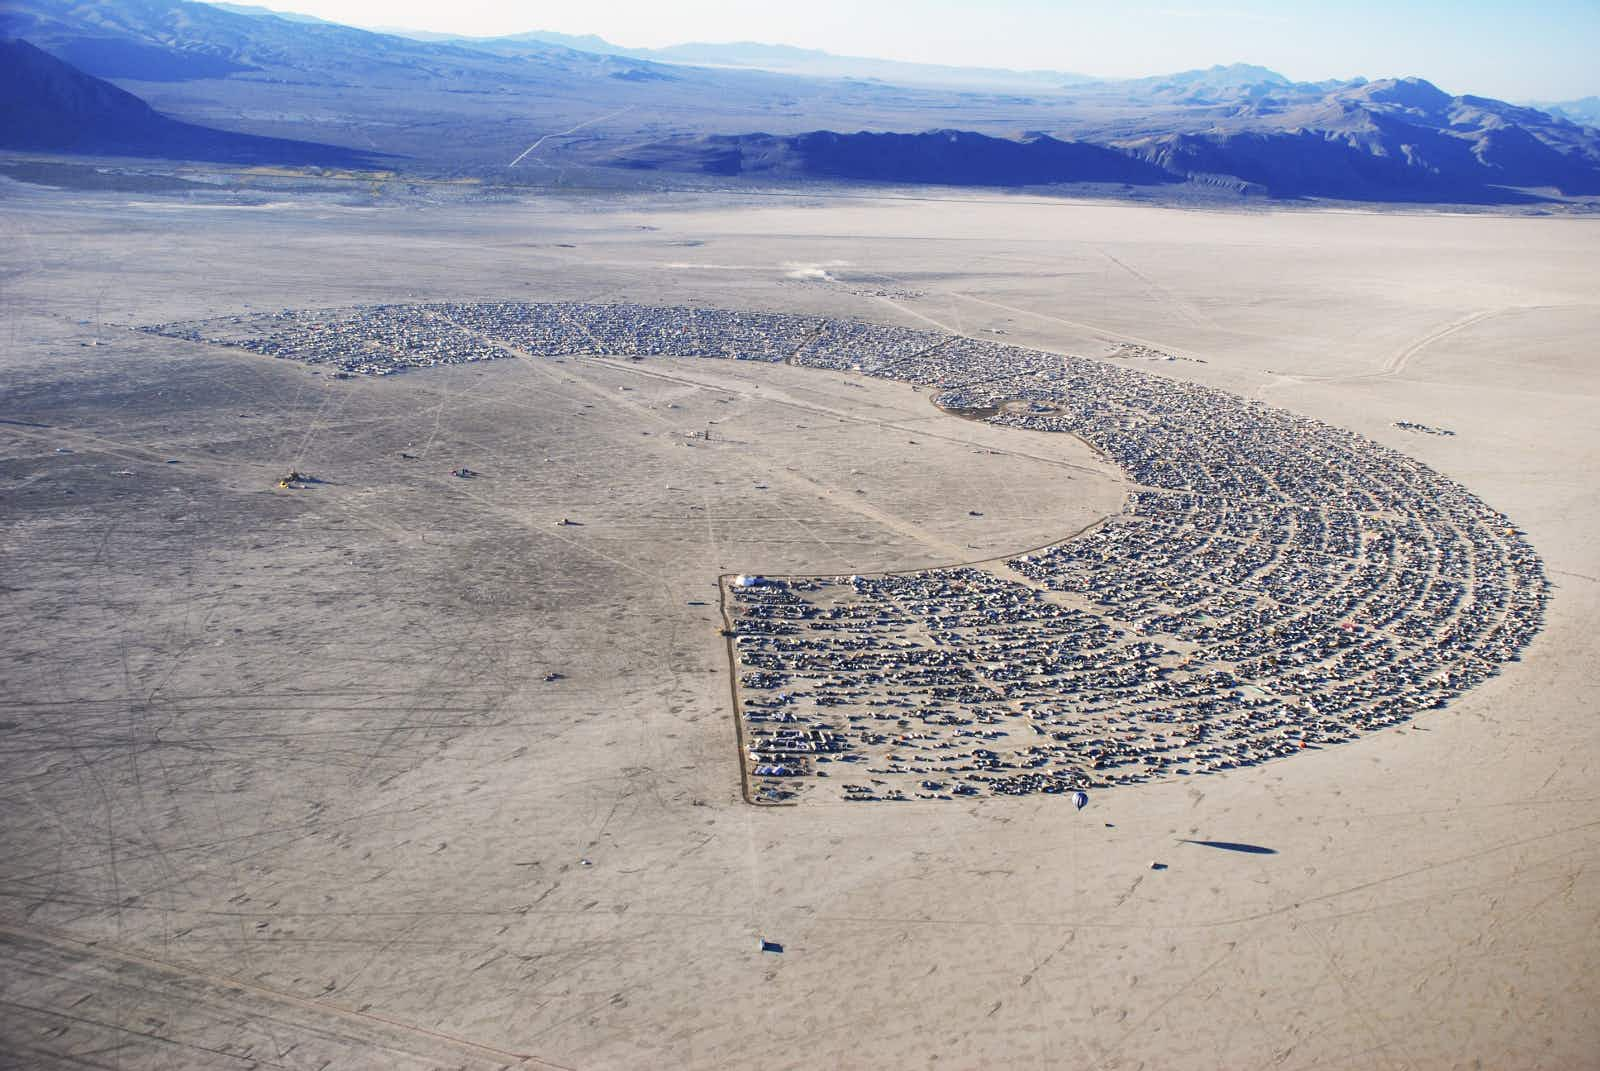 View Black Rock City through the ages ahead of this year's Burning Man